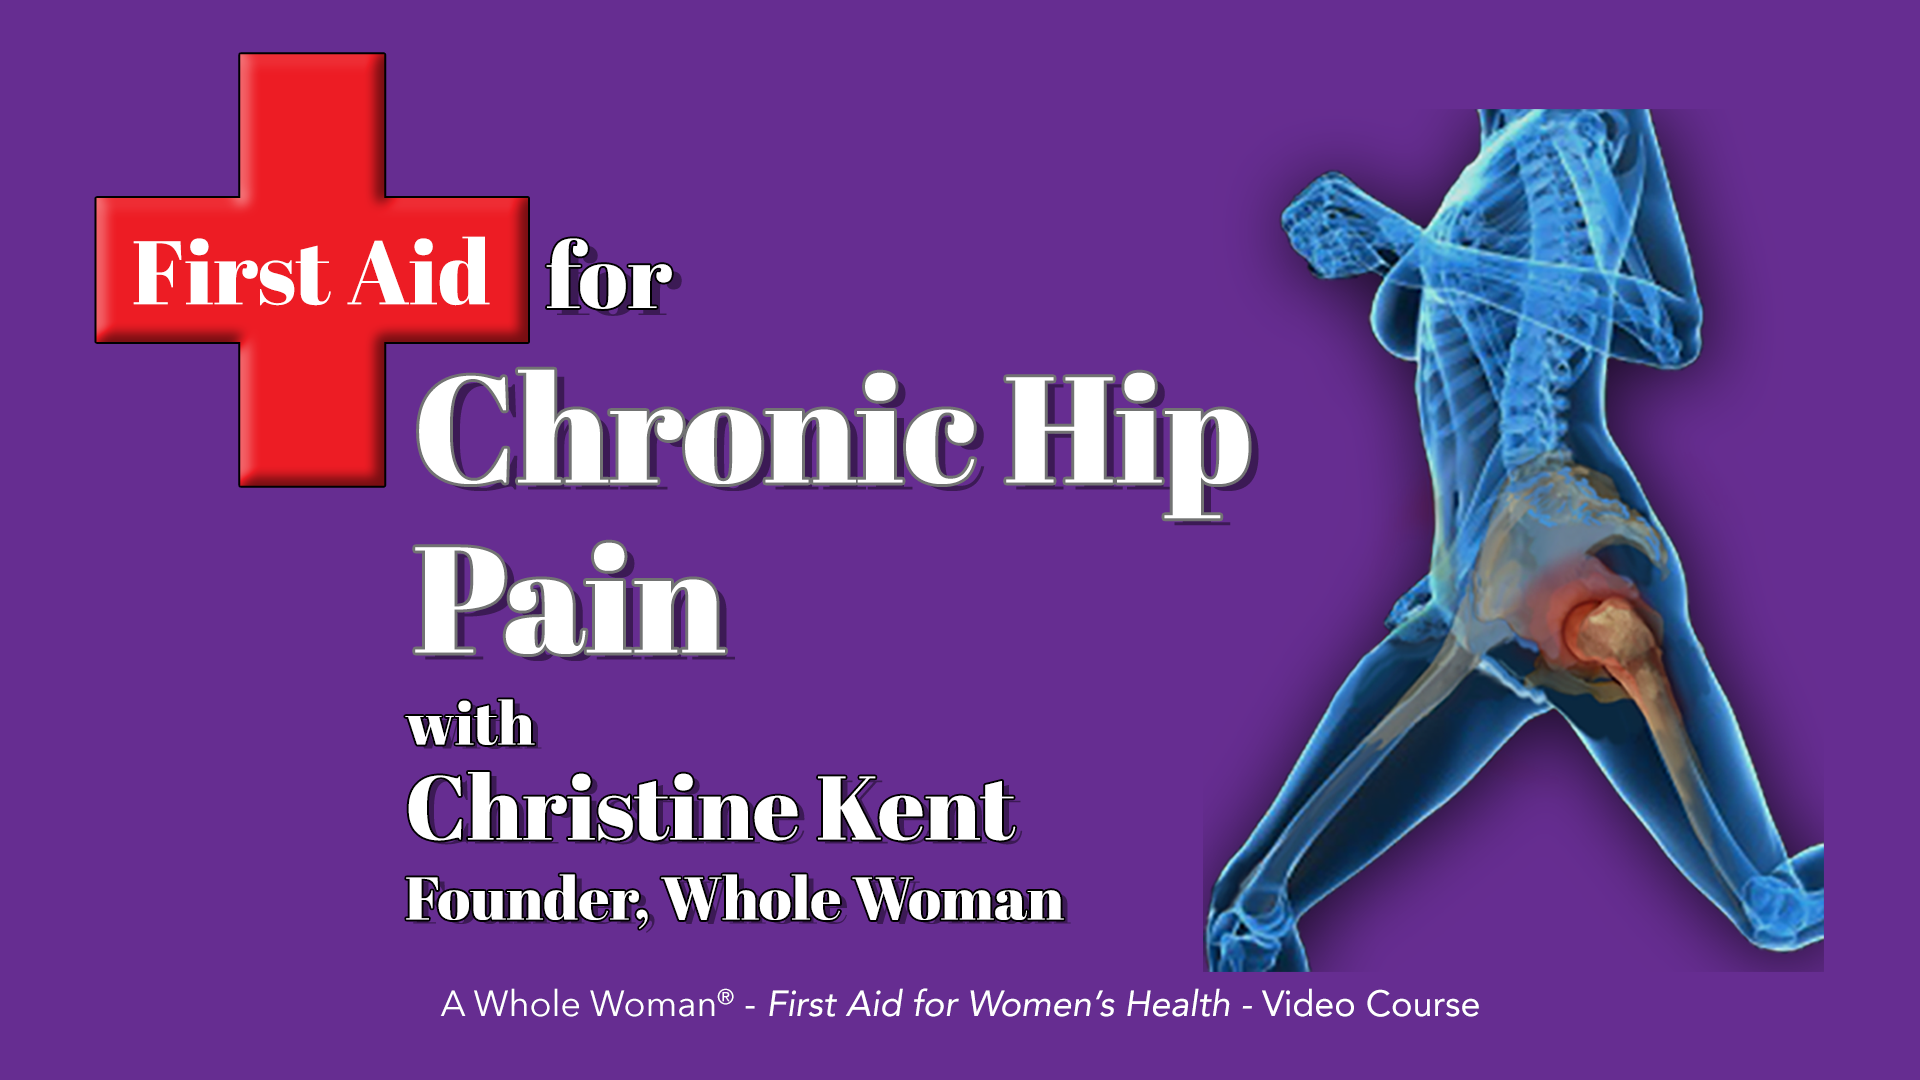 First Aid for Chronic Hip Pain